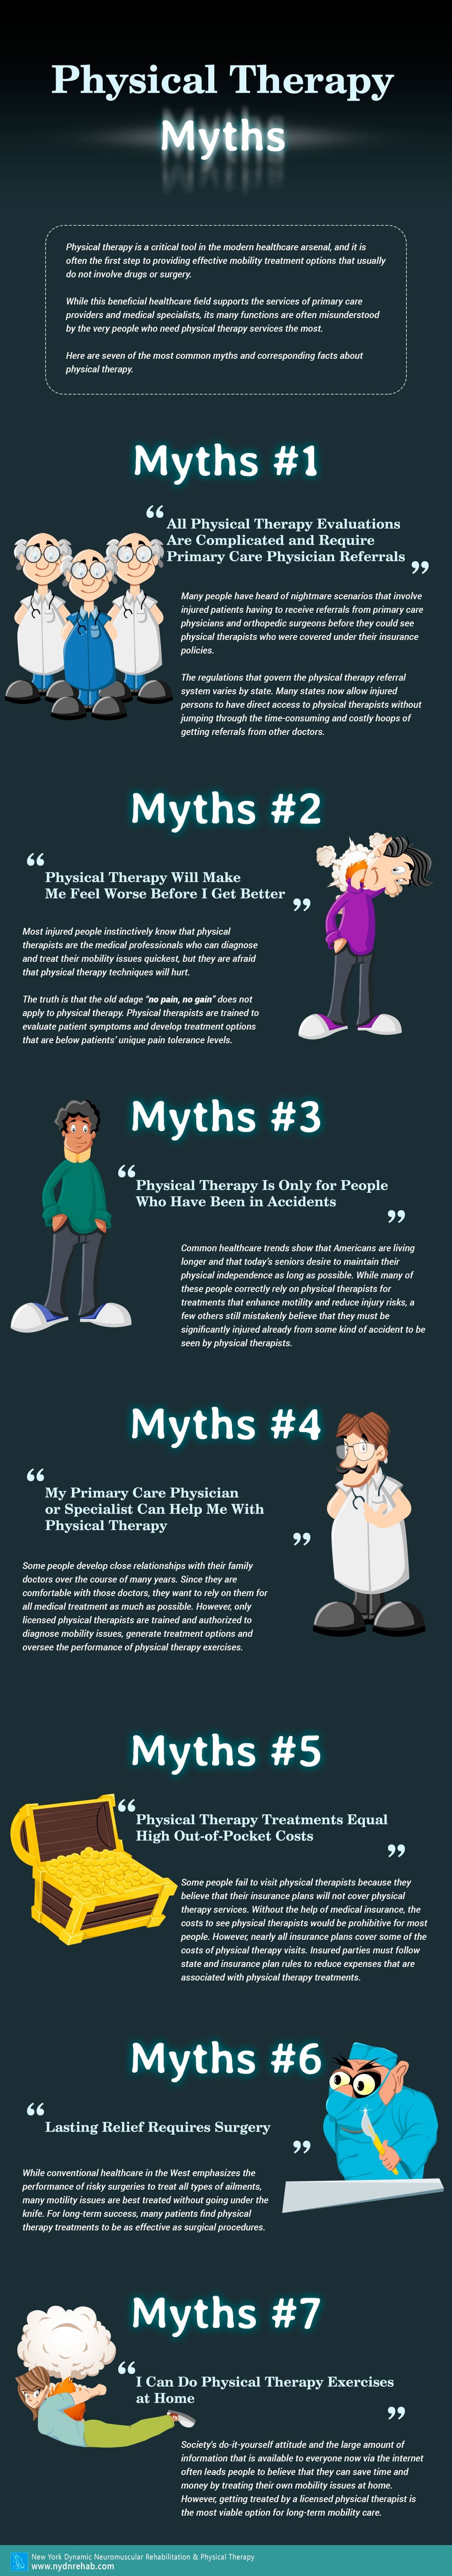 Physical Therapy Myths